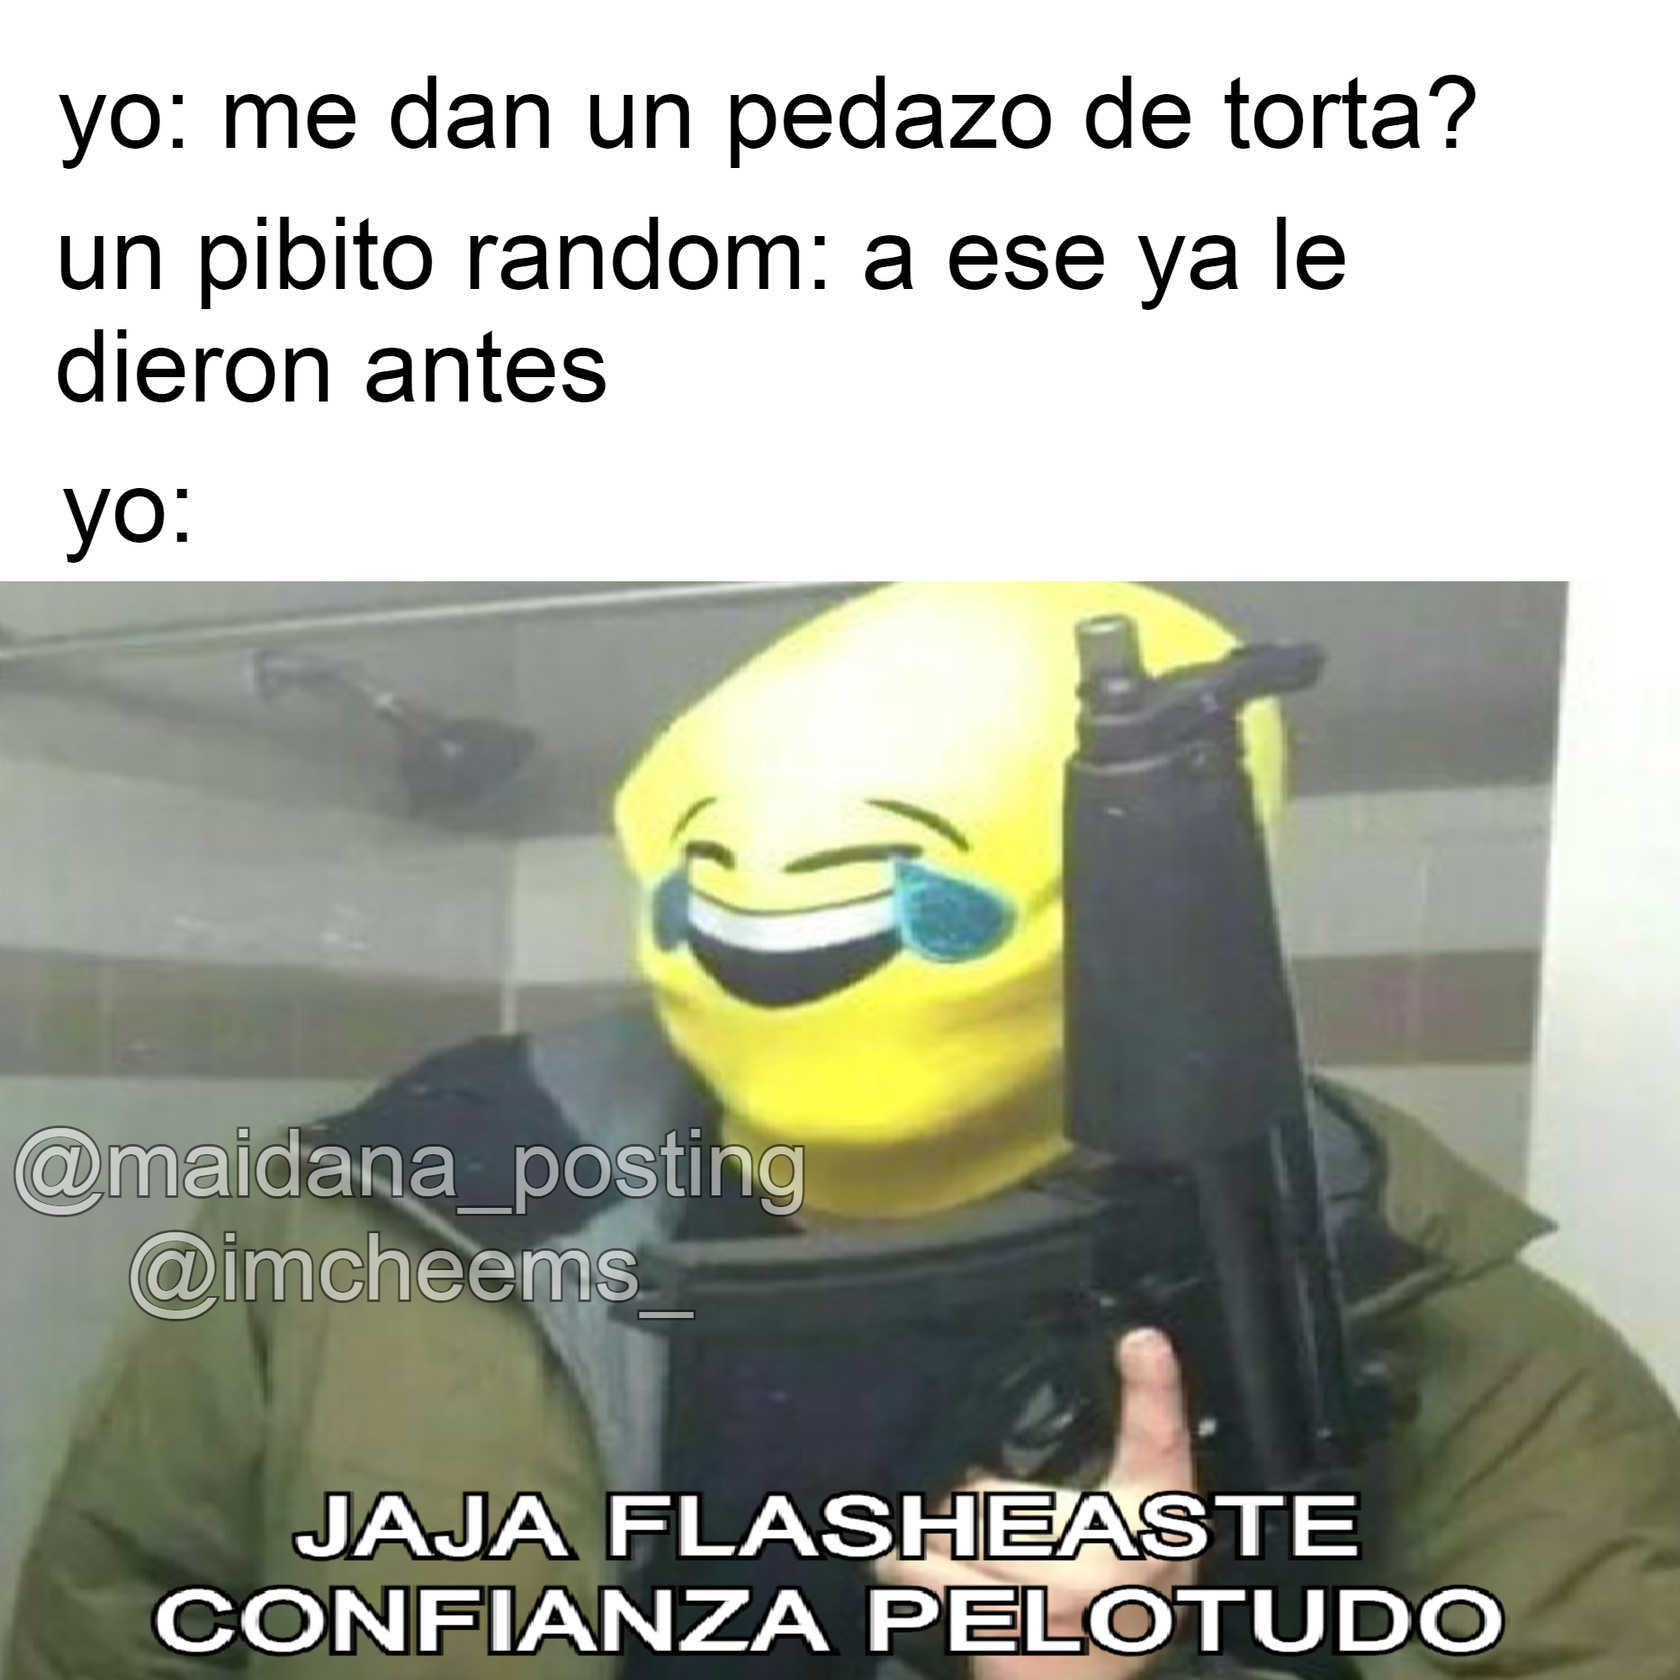 Jaja re flashaste - meme